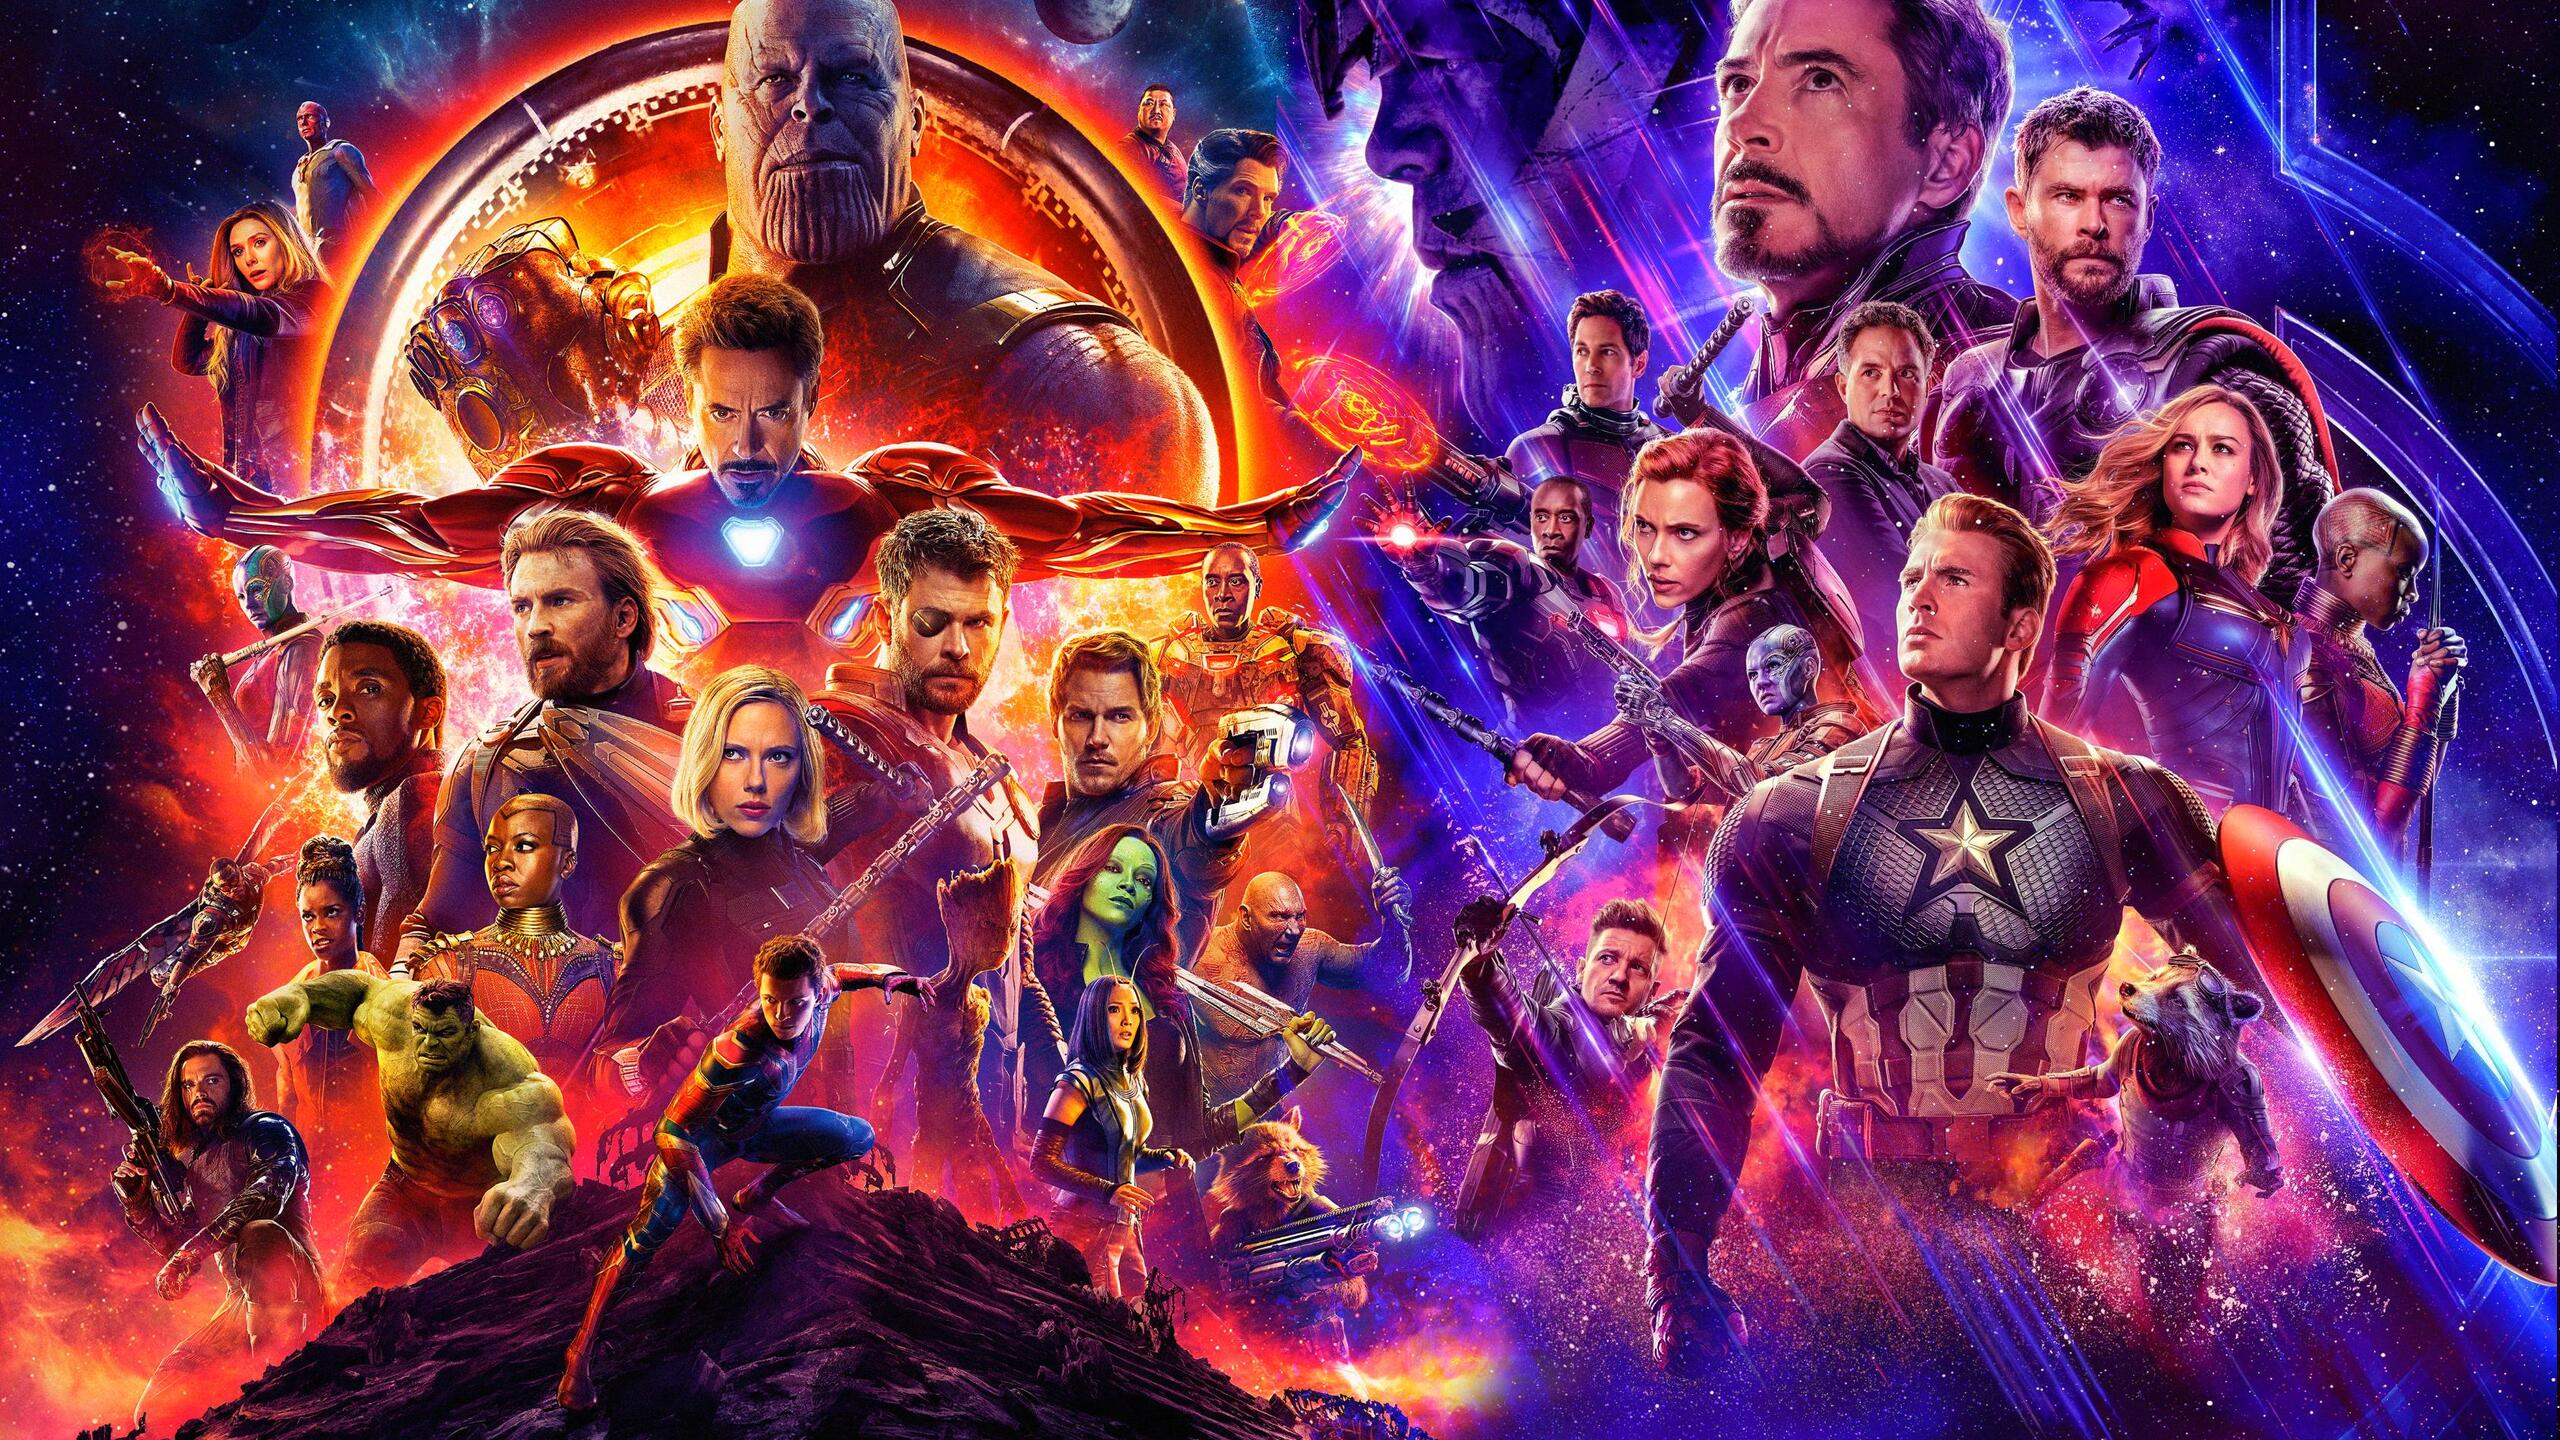 2560x1440 Avengers Infinity War And Endgame Poster 1440p Resolution